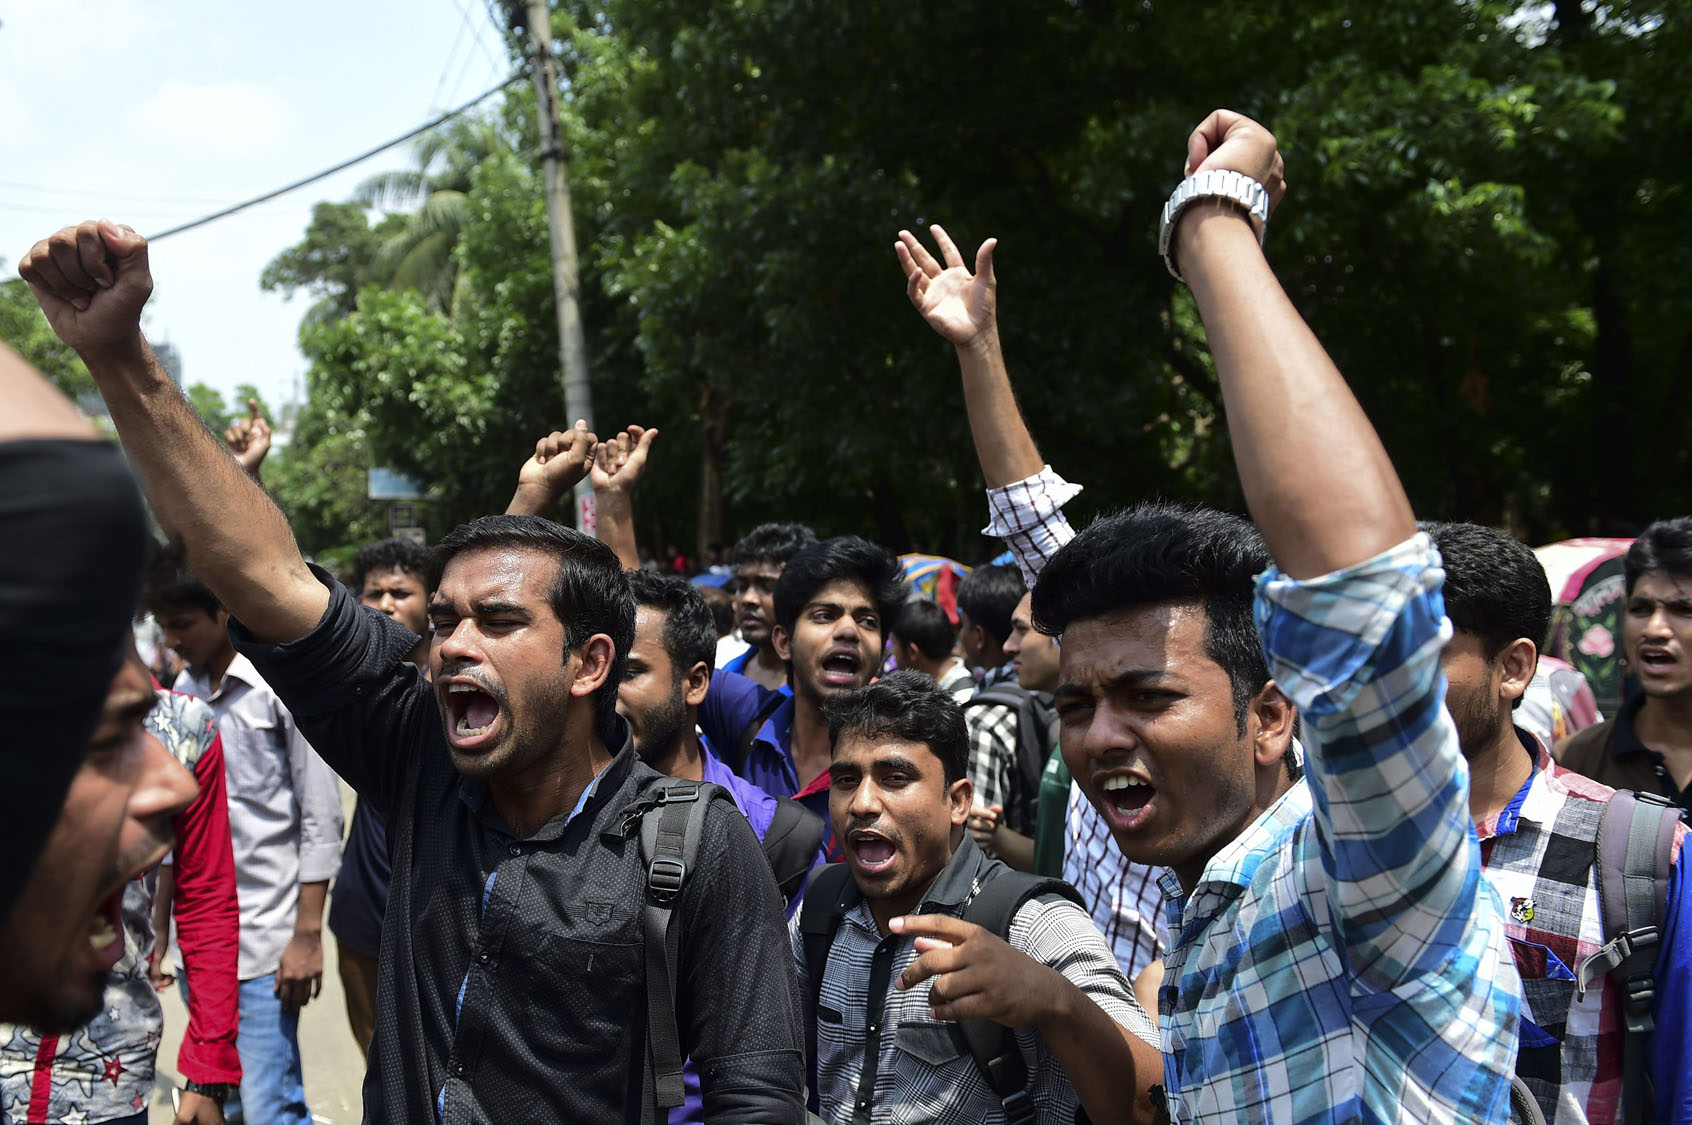 Stabbings, unrest in Bangladesh